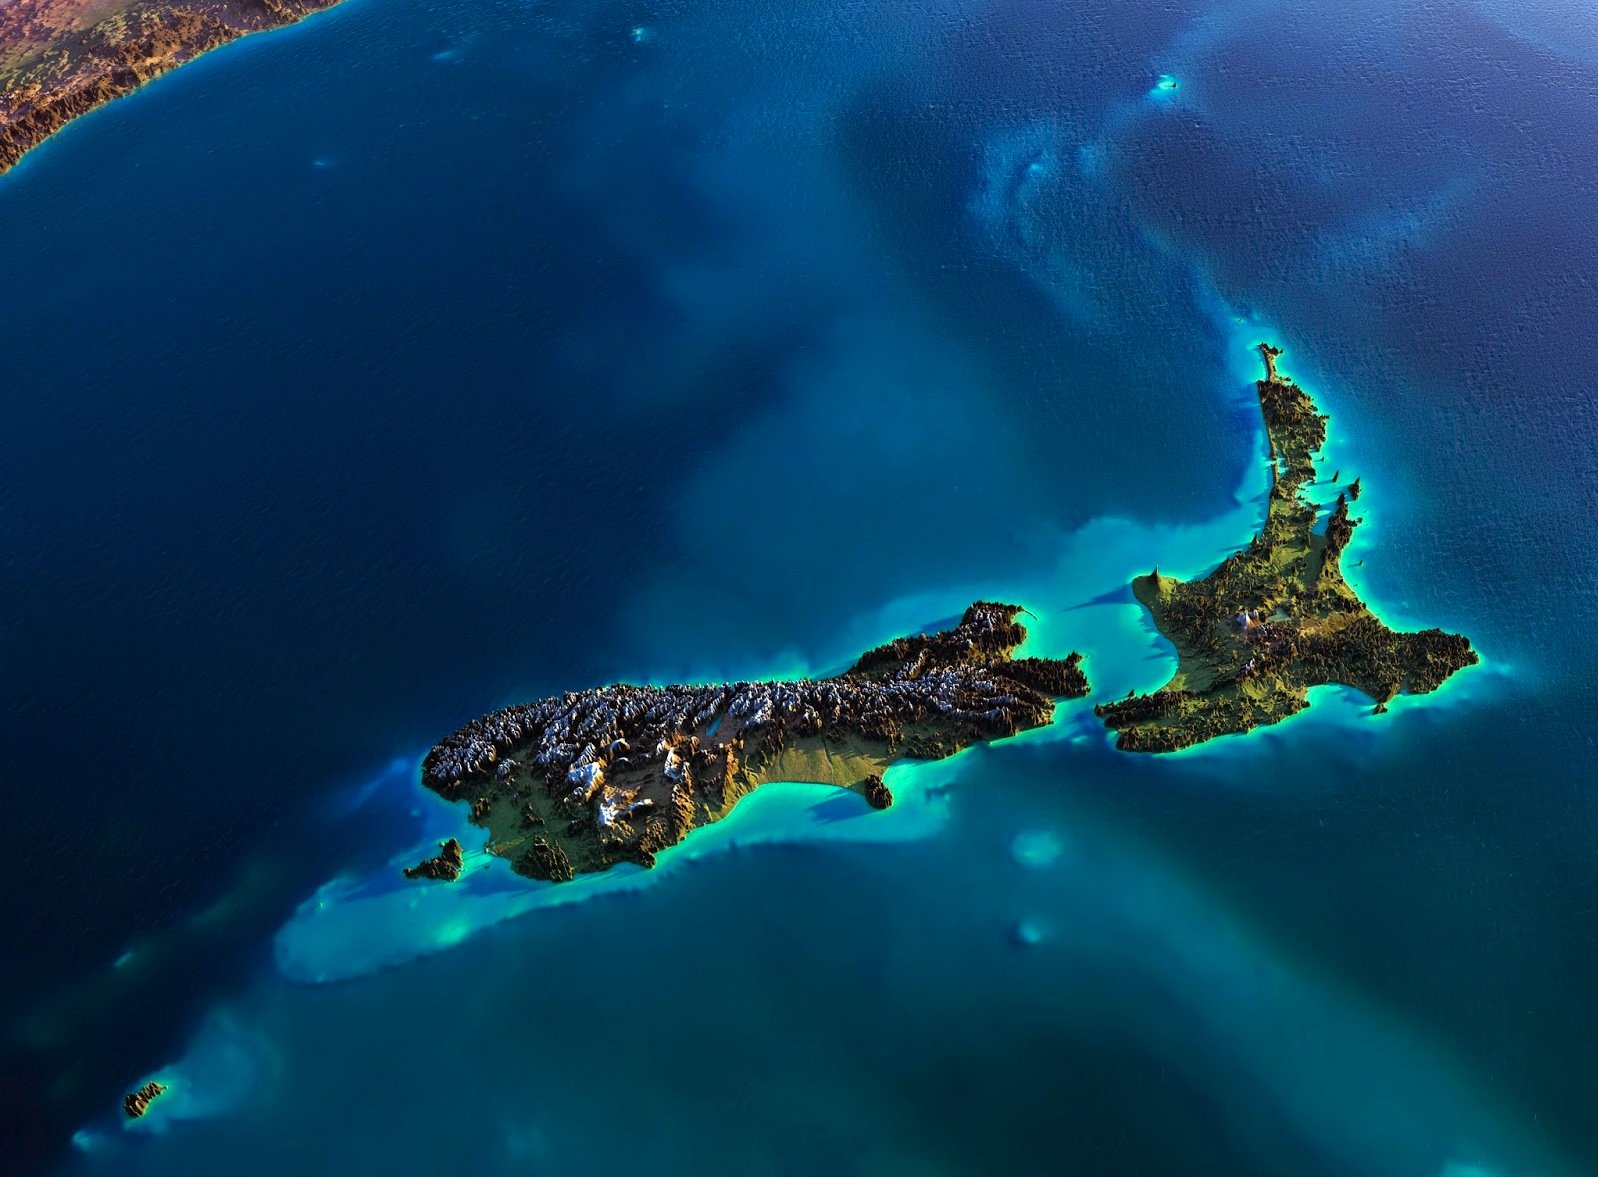 Taxation Of Cross-Border Mergers And Acquisitions: New Zealand 2014